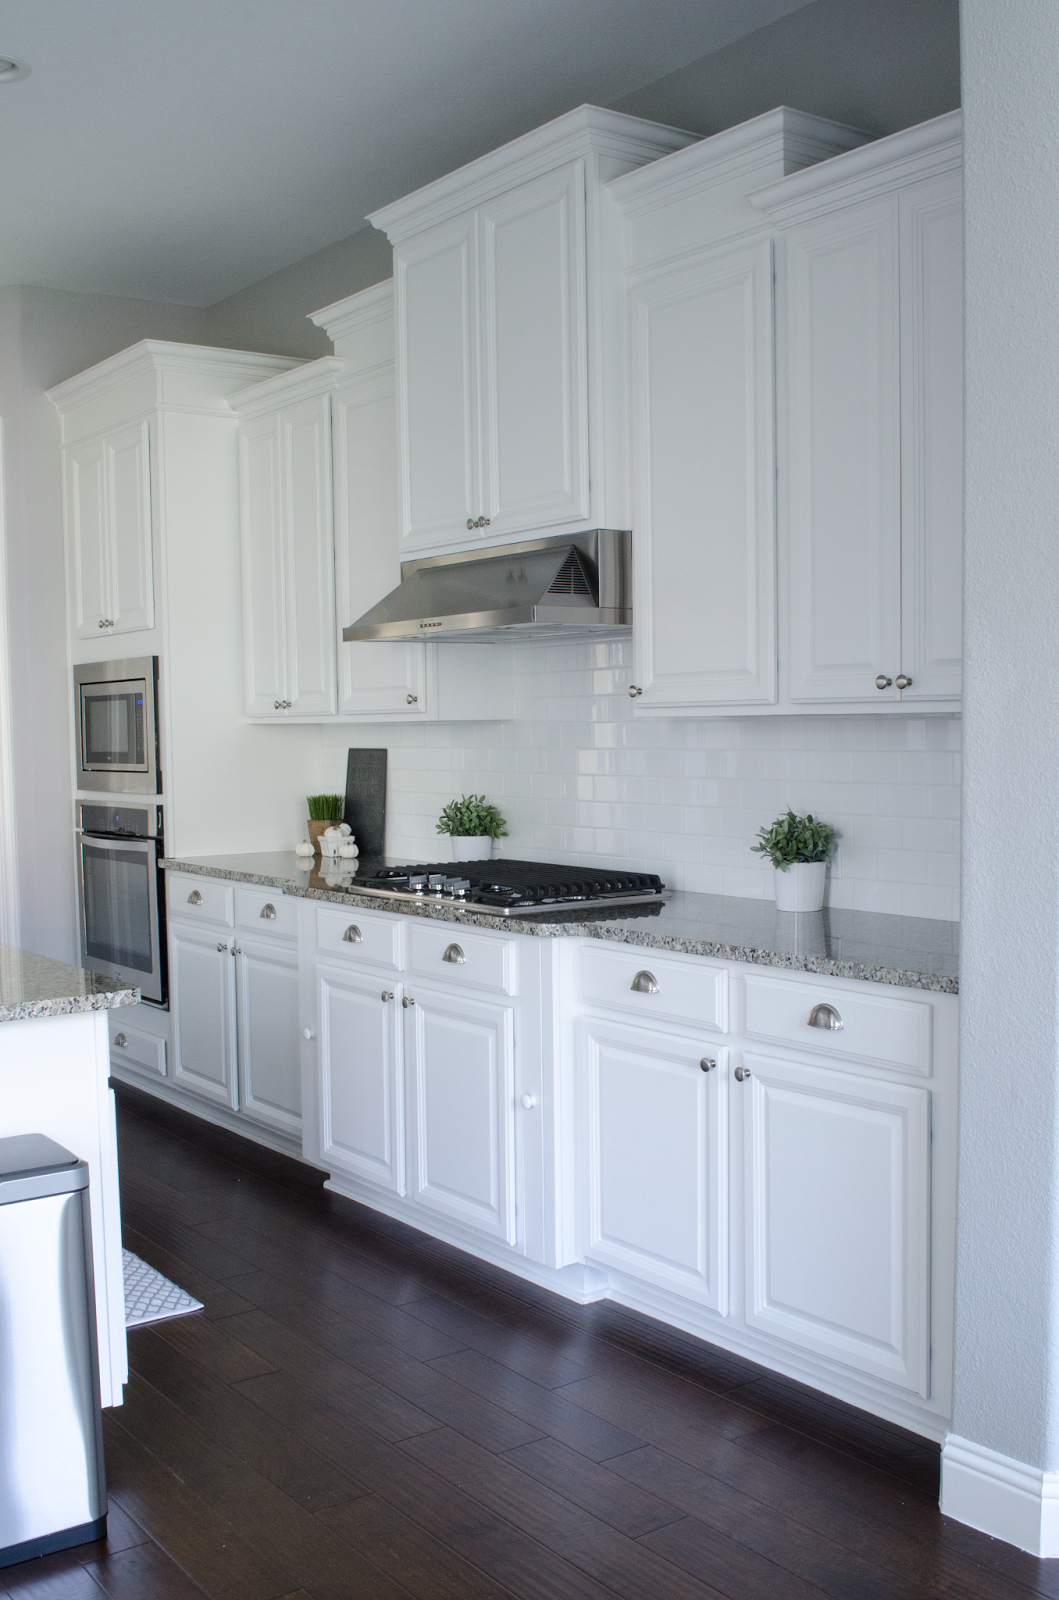 White kitchen cabinets kitchen love pinterest for Show me kitchen designs